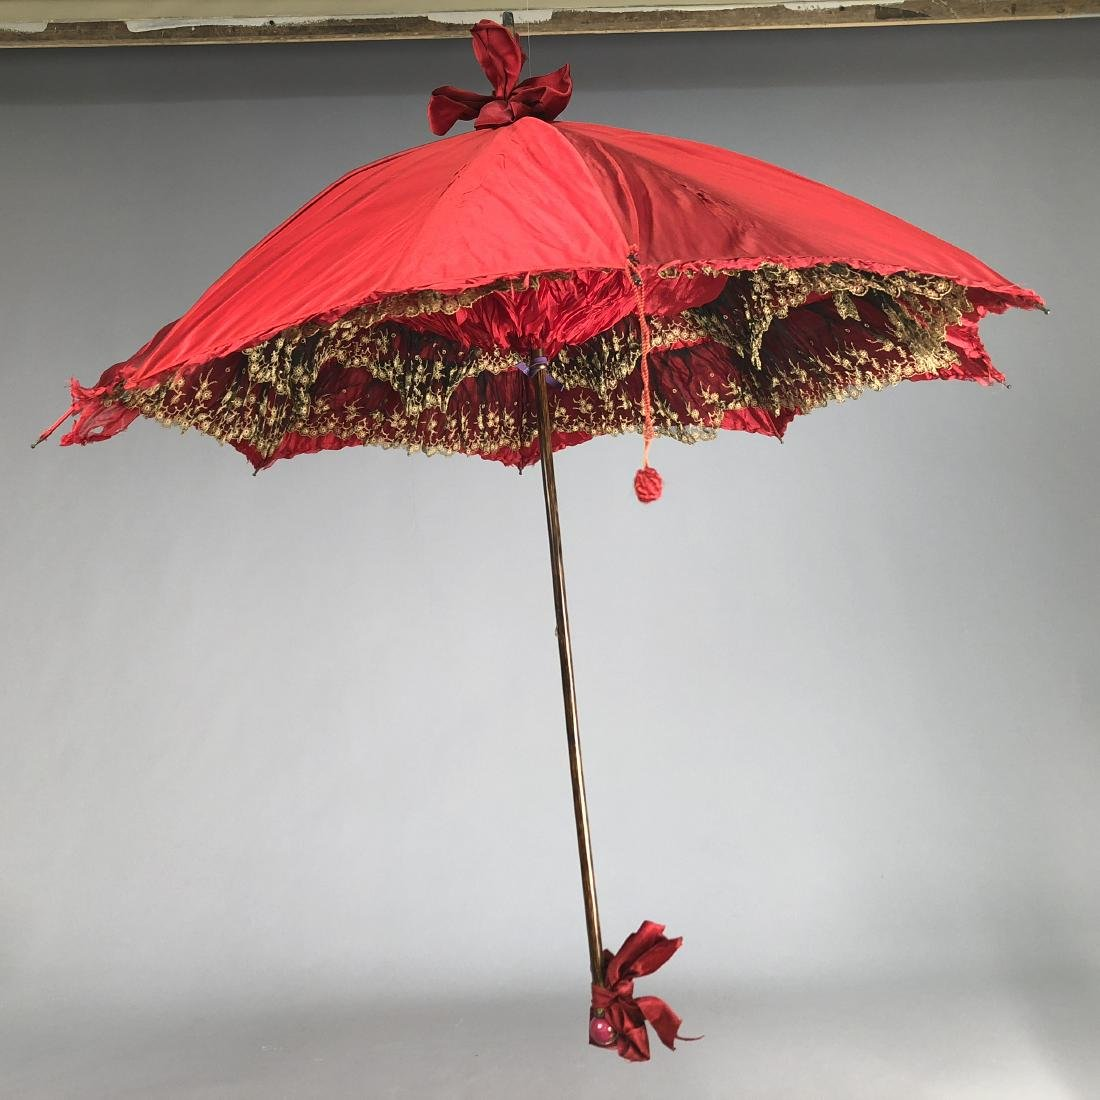 SATIN PARASOL with INTERIOR of BLACK and WHITE LACE,